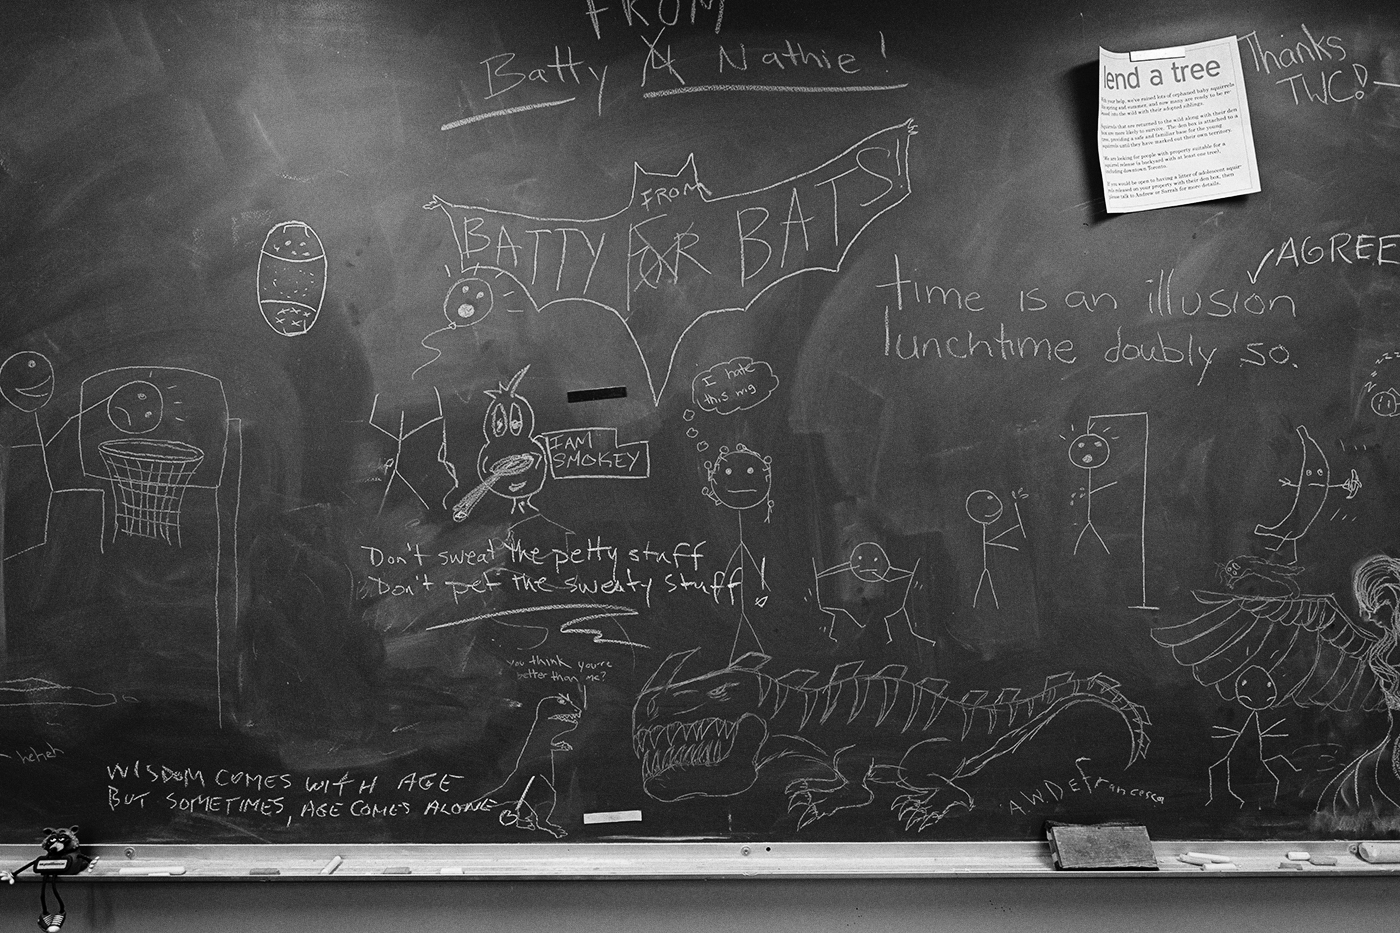 Blackboard with chalk drawins at the Toronto Wildlife Centre